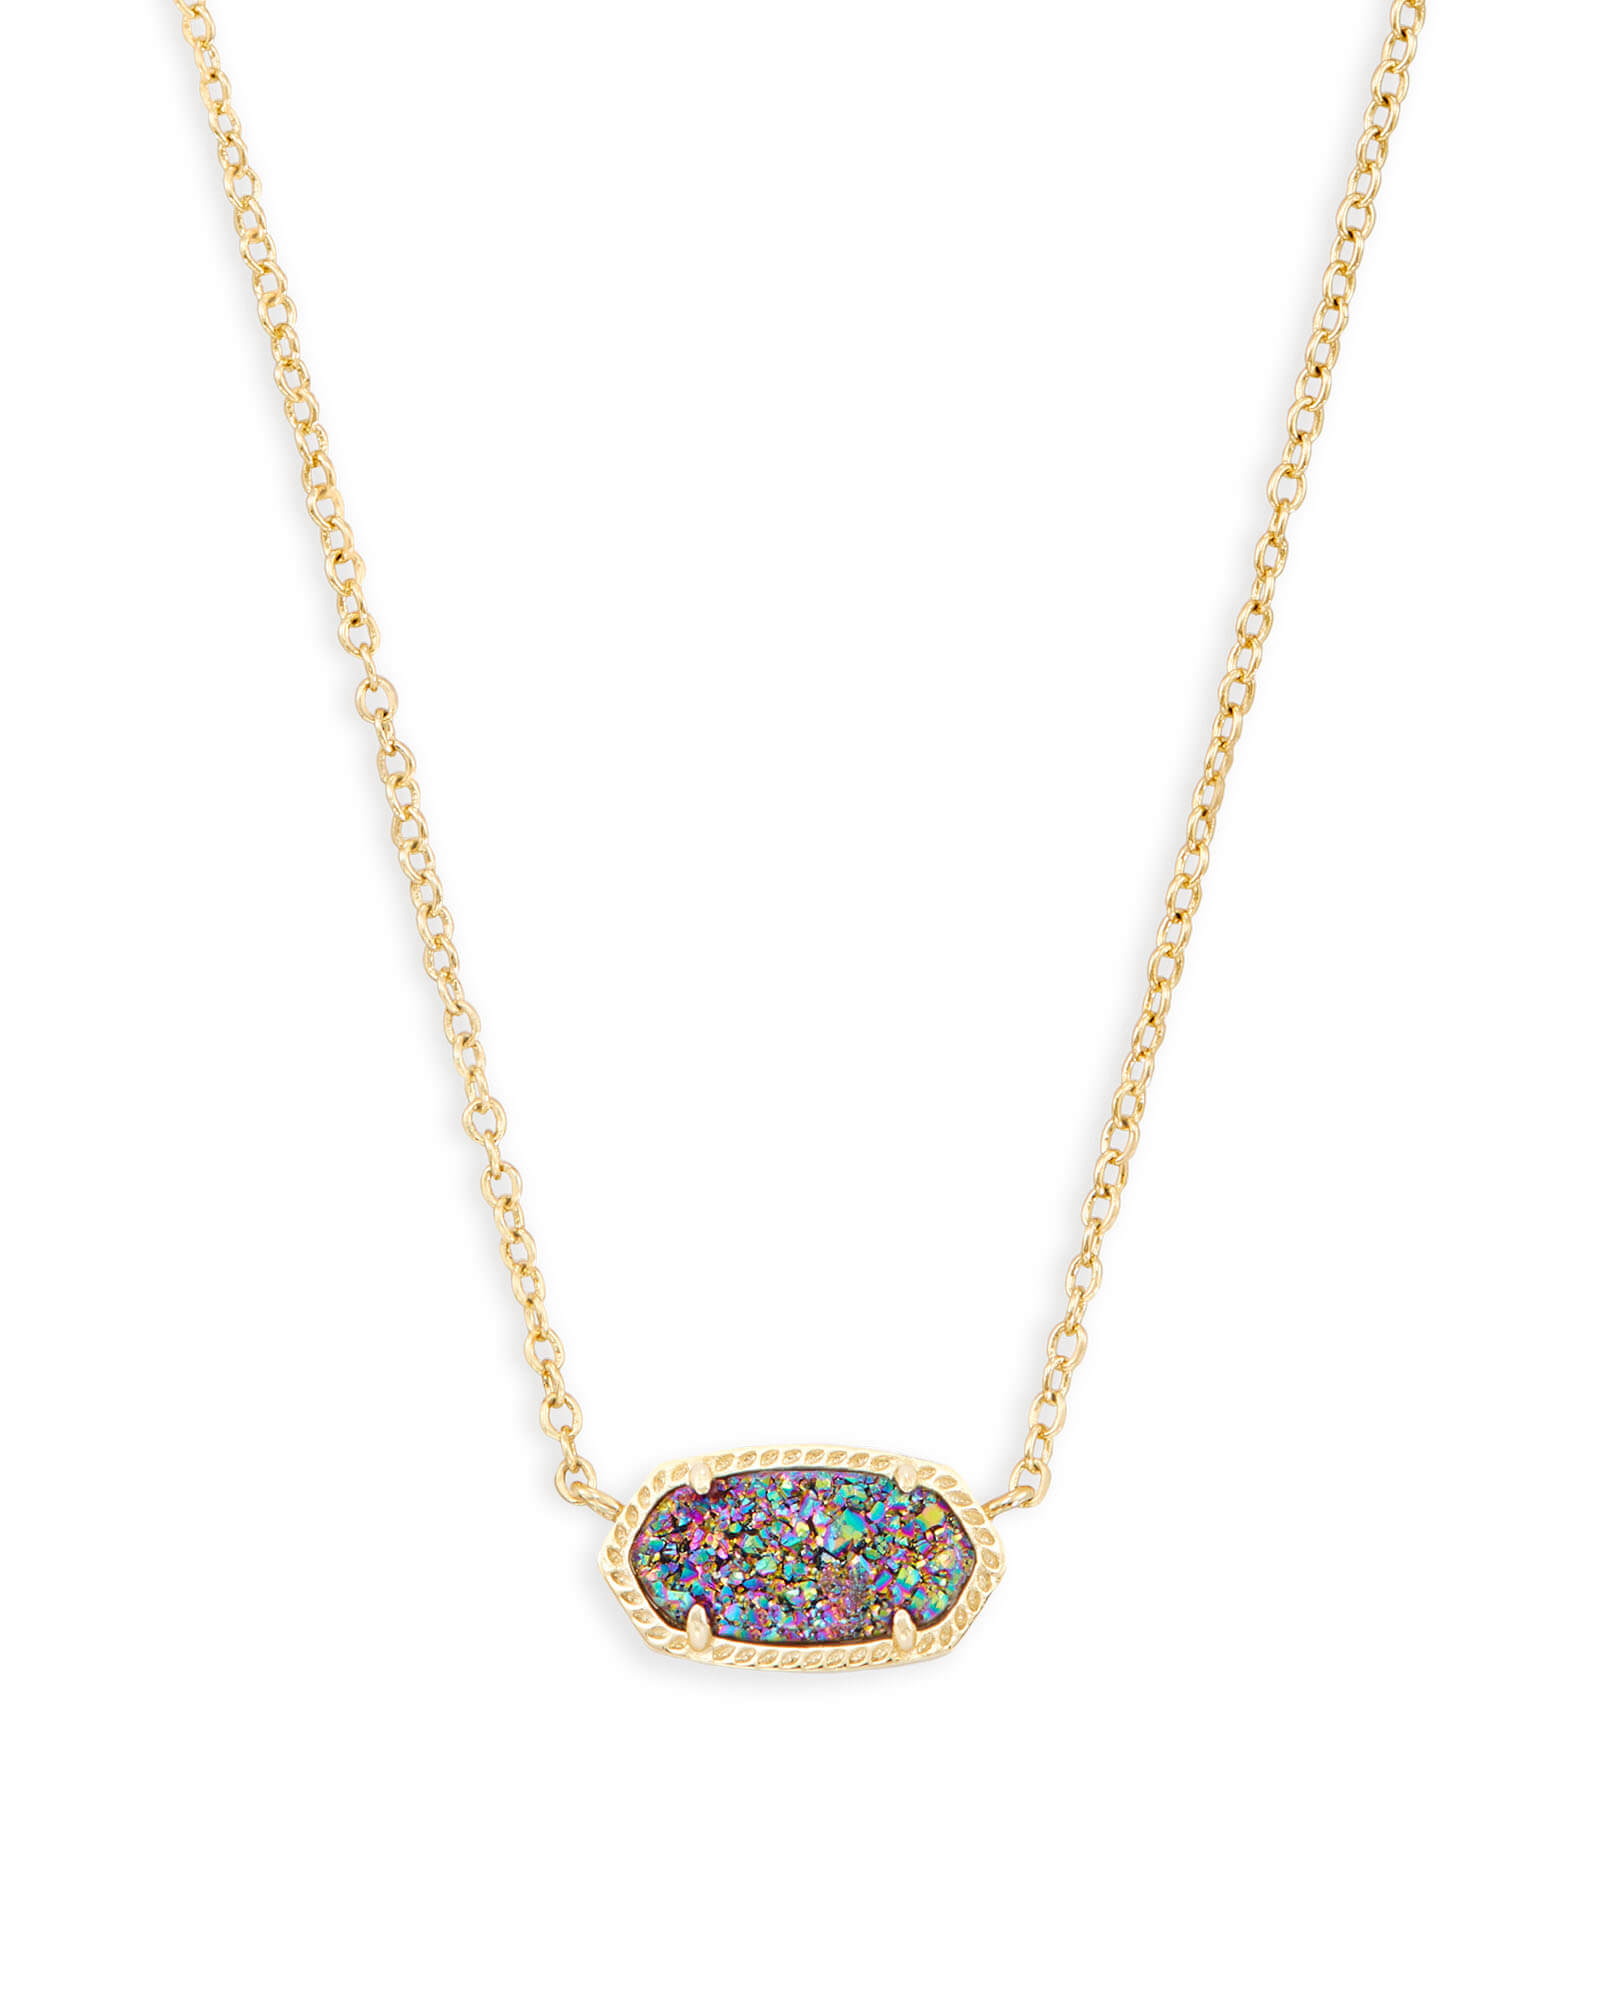 Elisa Gold Pendant Necklace In Multicolor Drusy | Kendra Scott Within Recent Sparkling Pattern Necklaces (View 11 of 25)